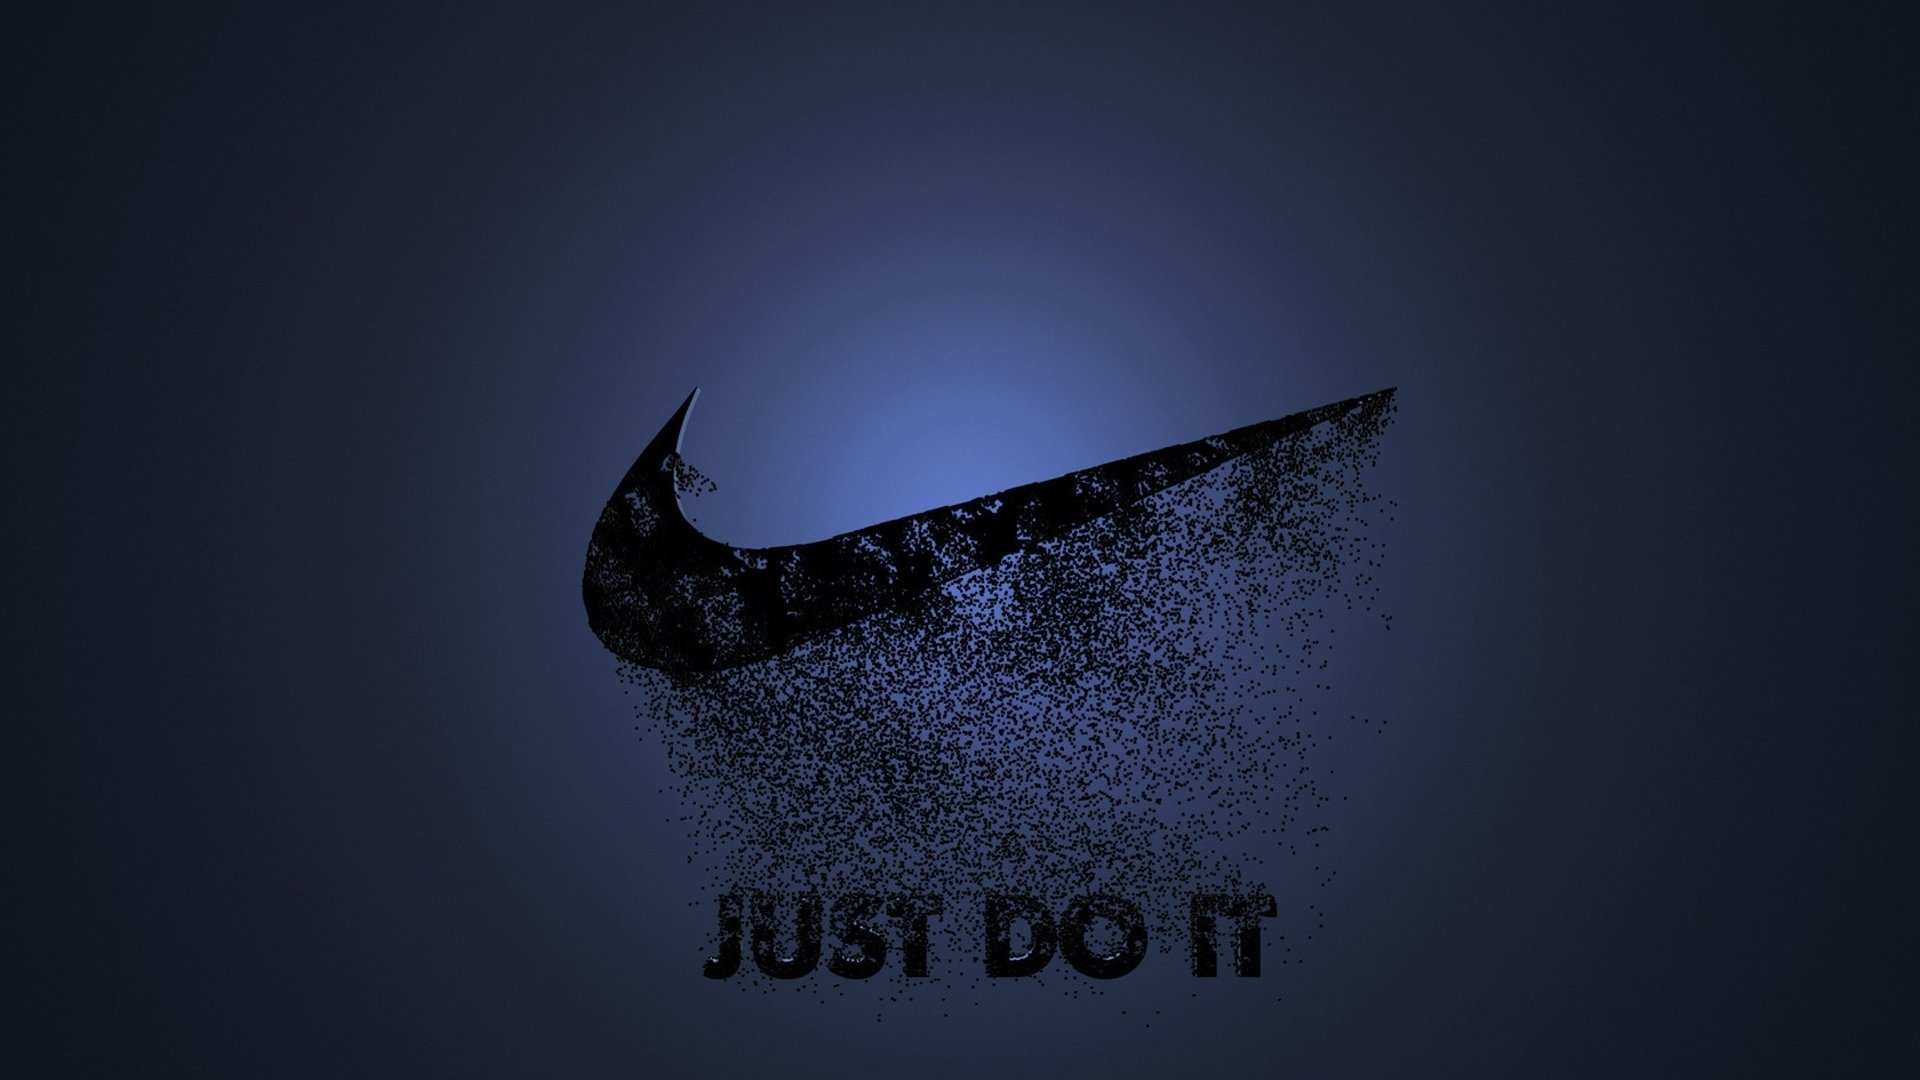 Fantastic Wallpaper Logo Nike - thumb-1920-632661  Collection_291882.jpg